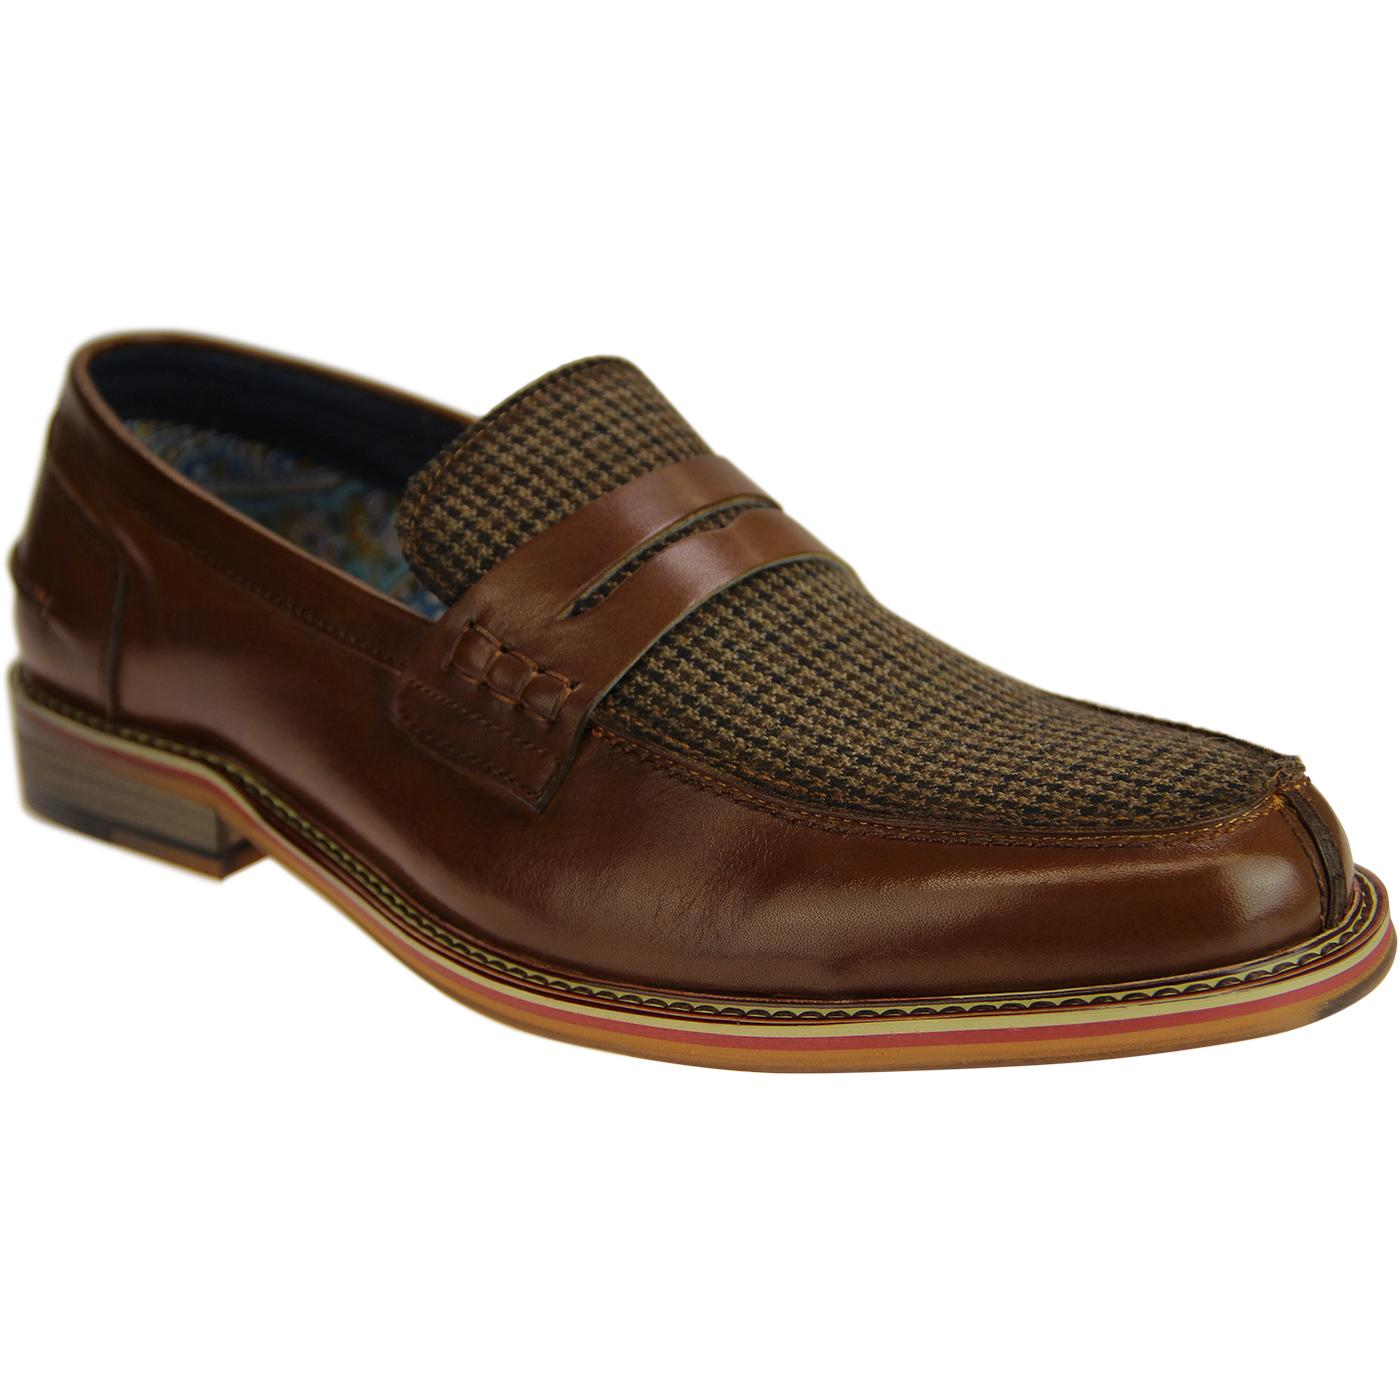 Dennis PAOLO VANDINI 60's Mod Tweed Penny Loafers